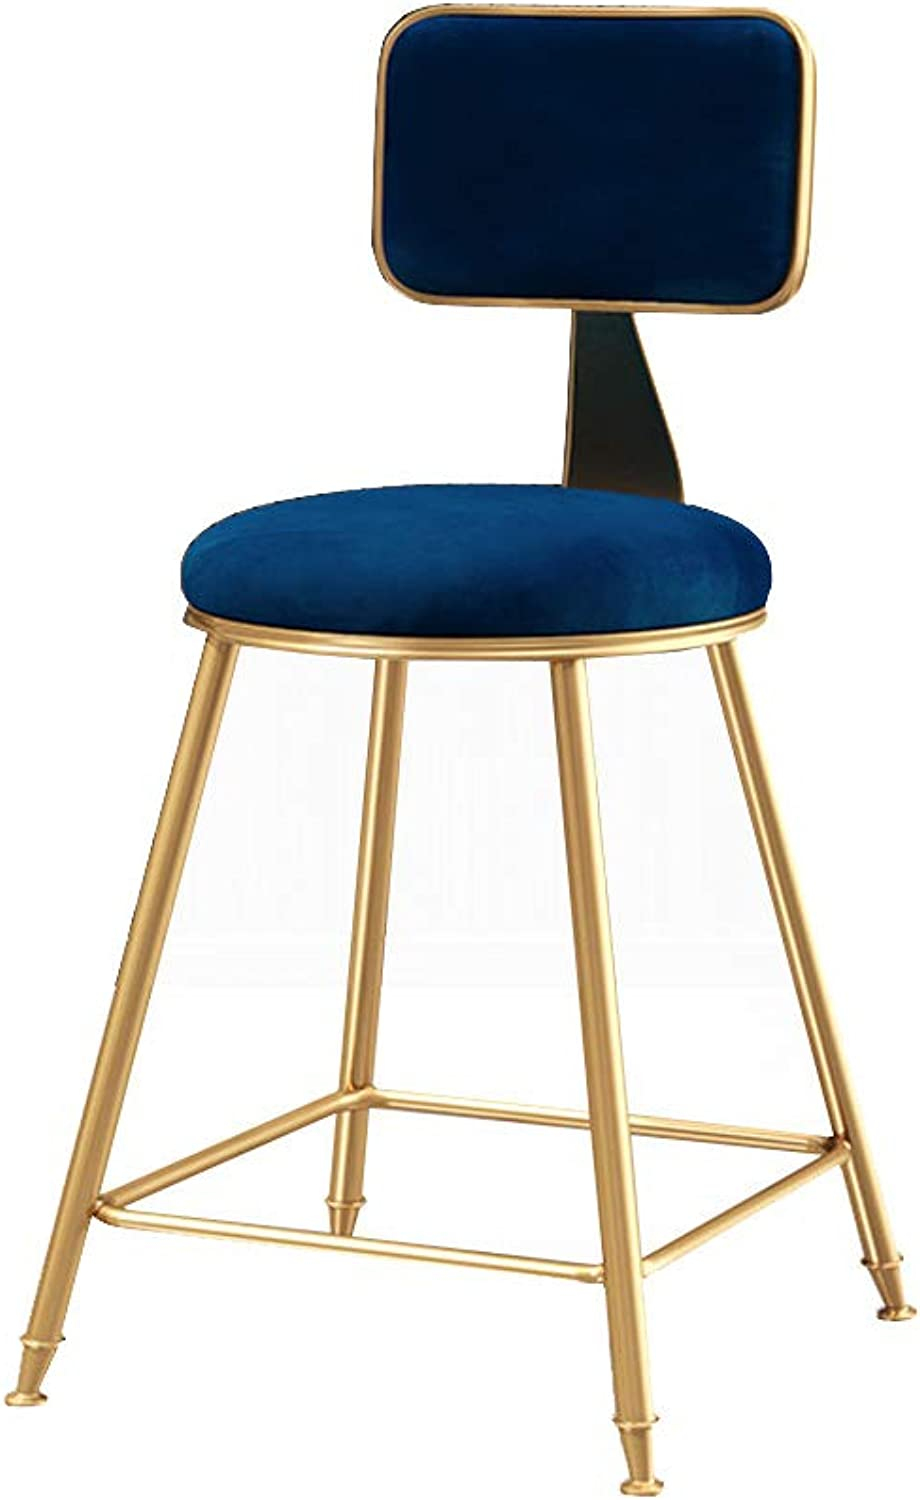 Modern Barstools Footrest Chair with Back Side Dining Chairs Counter Height   Velvet Cushion and Metal Legs for Bar Pub Dining Kitchen, bluee